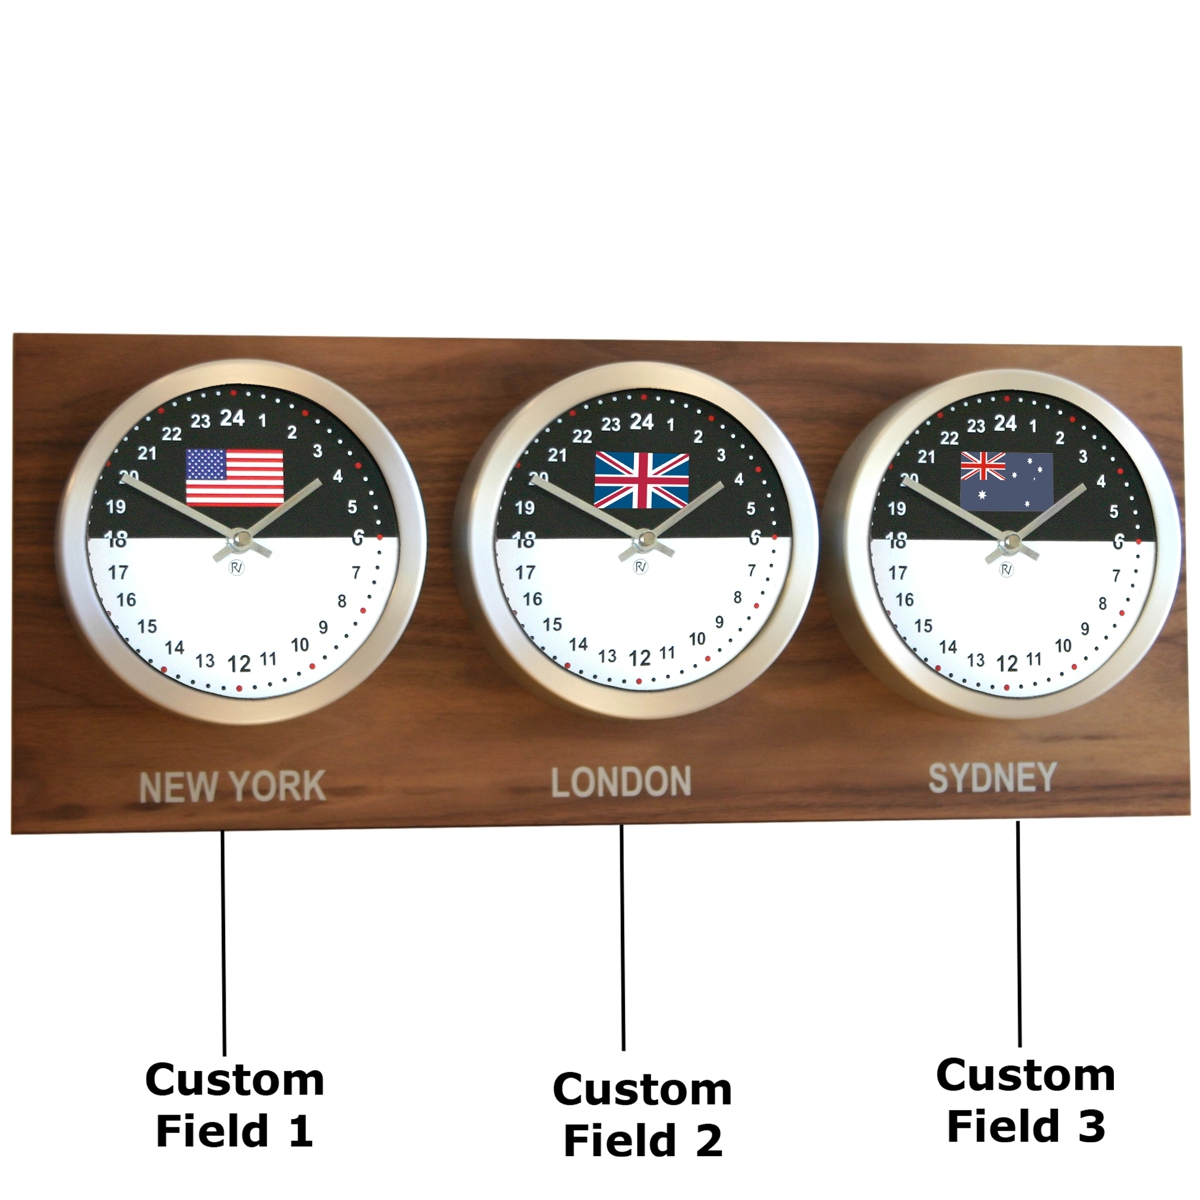 Roco Verre Custom World 3 18cm Flag Clocks Walnut H25cm x L62cm x D8cm